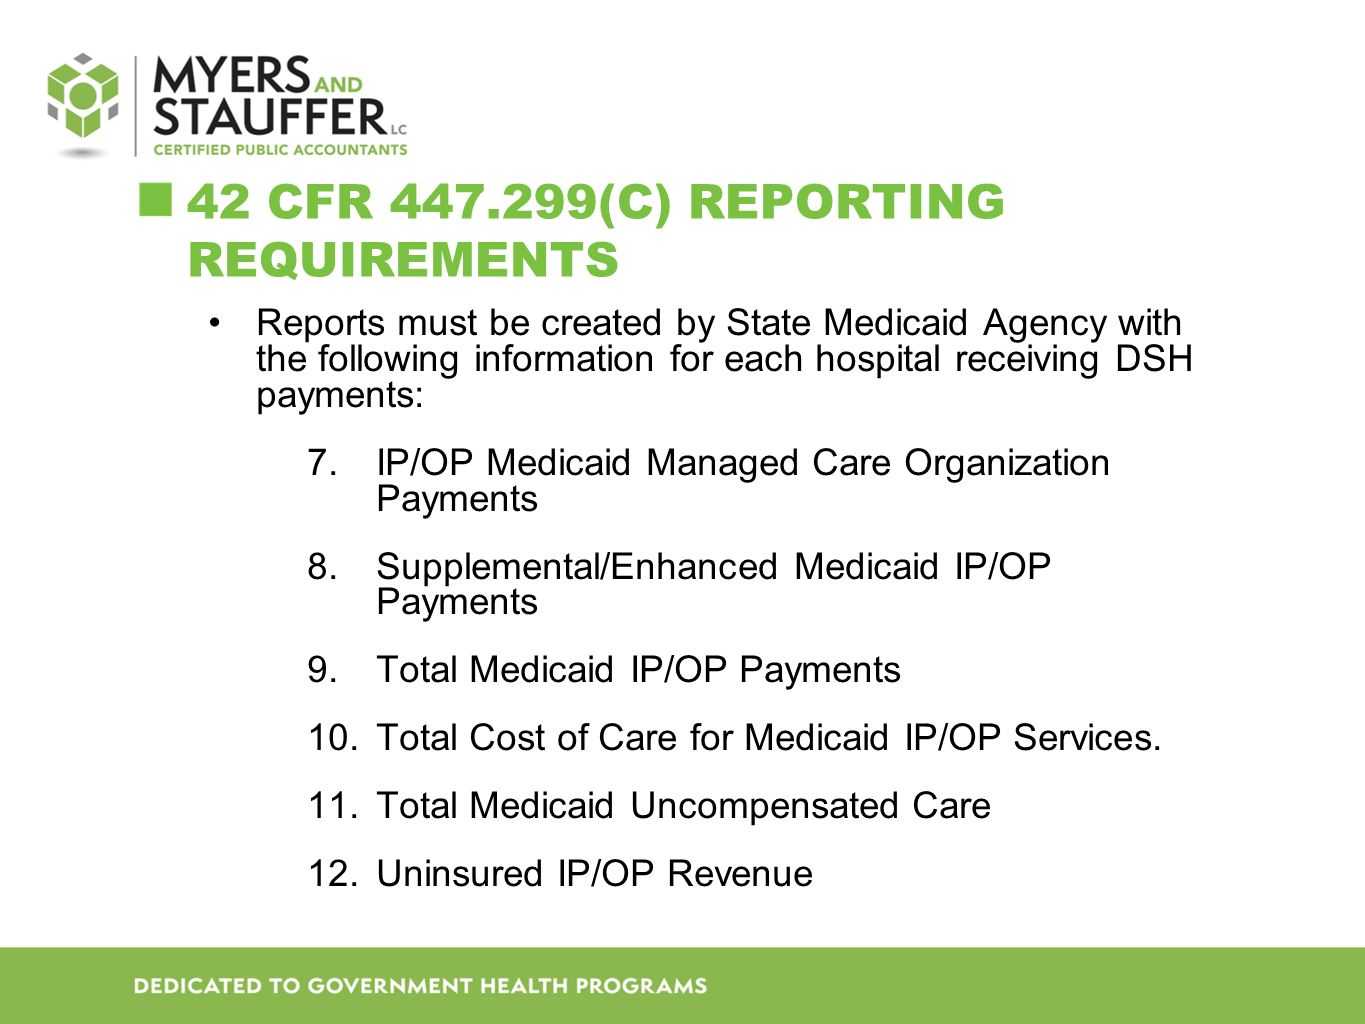 42 CFR 447.299(C) REPORTING REQUIREMENTS Reports must be created by State Medicaid Agency with the following information for each hospital receiving DSH payments: 13.Total Applicable Section 1011 Payments 14.Total Cost on IP/OP Care for Uninsured 15.Total Uninsured IP/OP Uncompensated Care Costs 16.Total Annual Uncompensated Care Cost 17.Disproportionate Share Hospital Payments States must report DSH payments to all hospitals under the authority of the approved Medicaid State Plan.